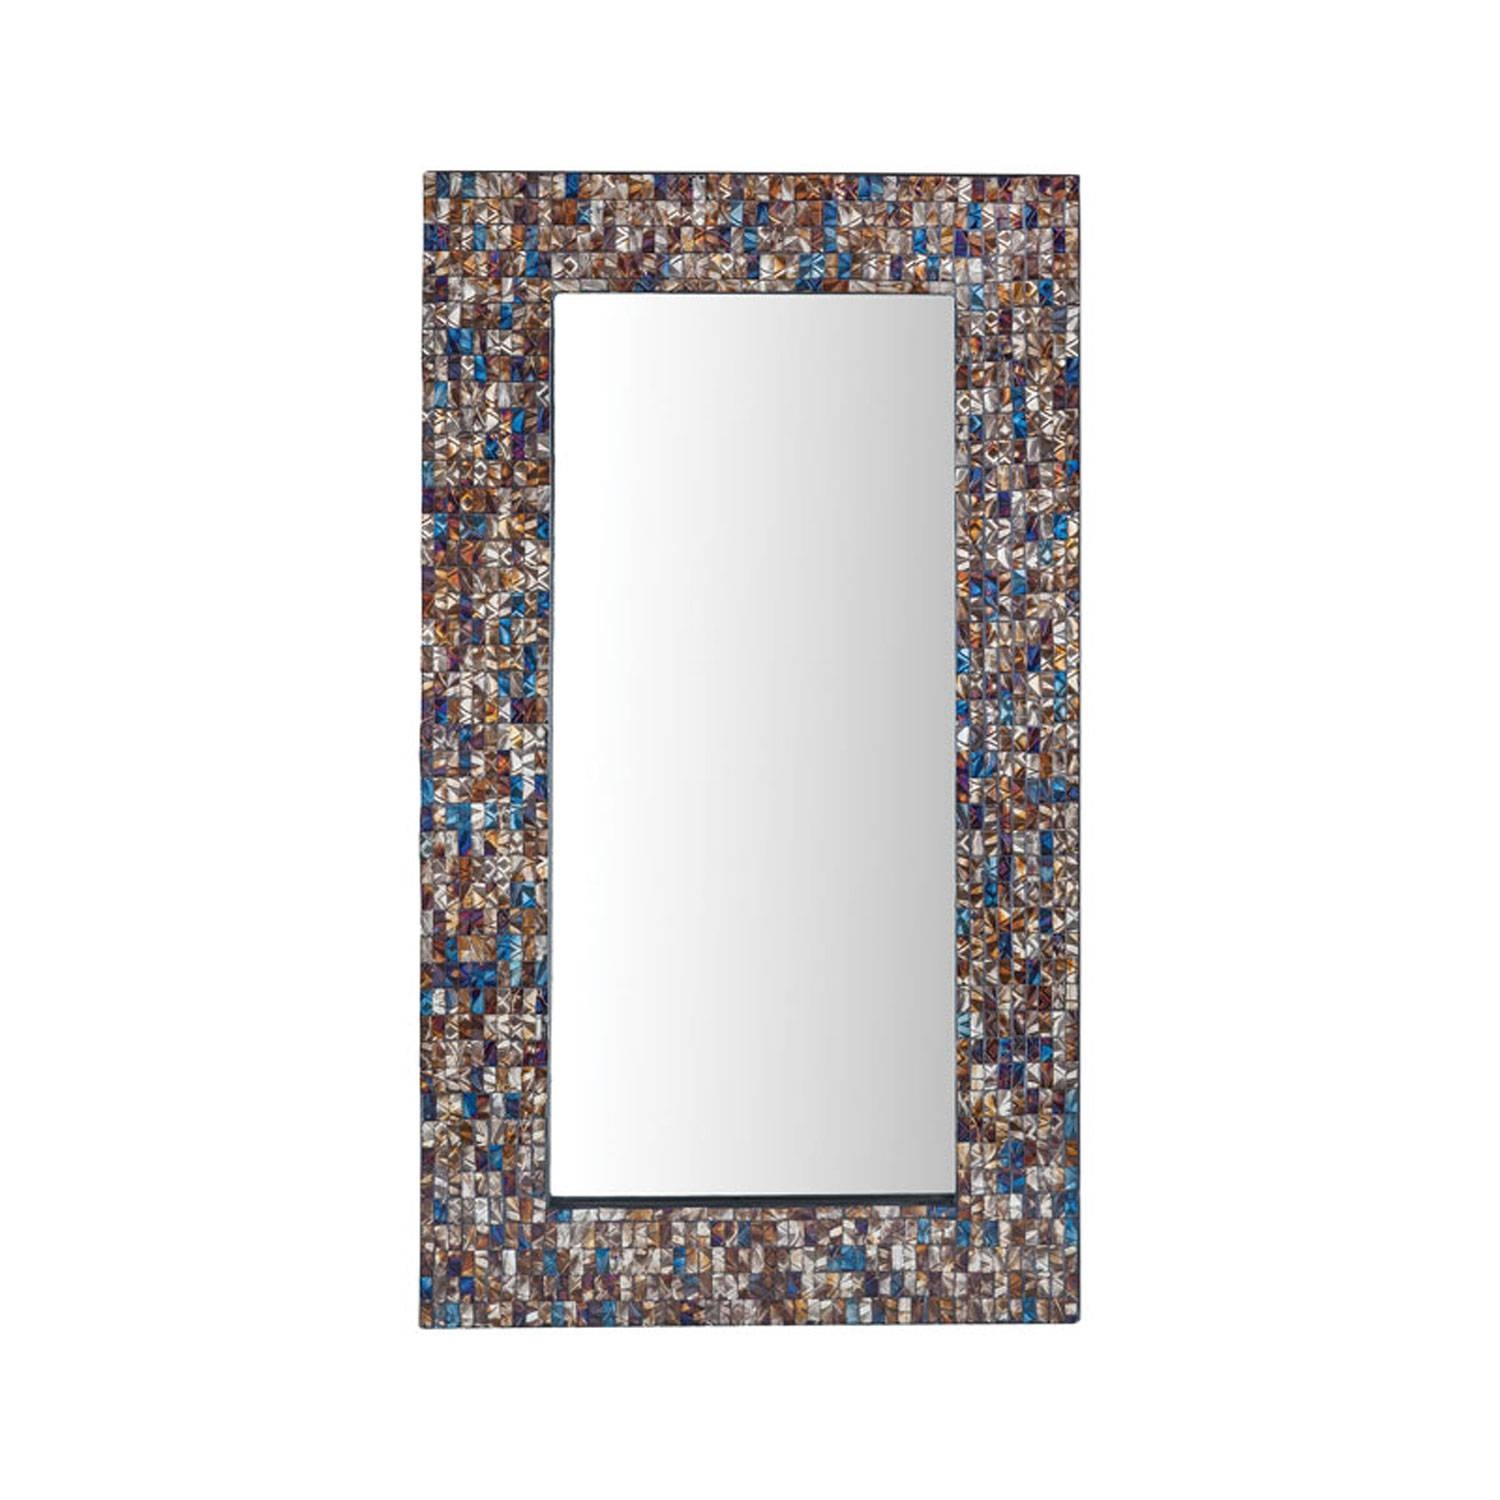 Byzantion Bronze Mosaic Mirror Sterling Industries Wall Mirror pertaining to Bronze Mosaic Mirrors (Image 6 of 15)